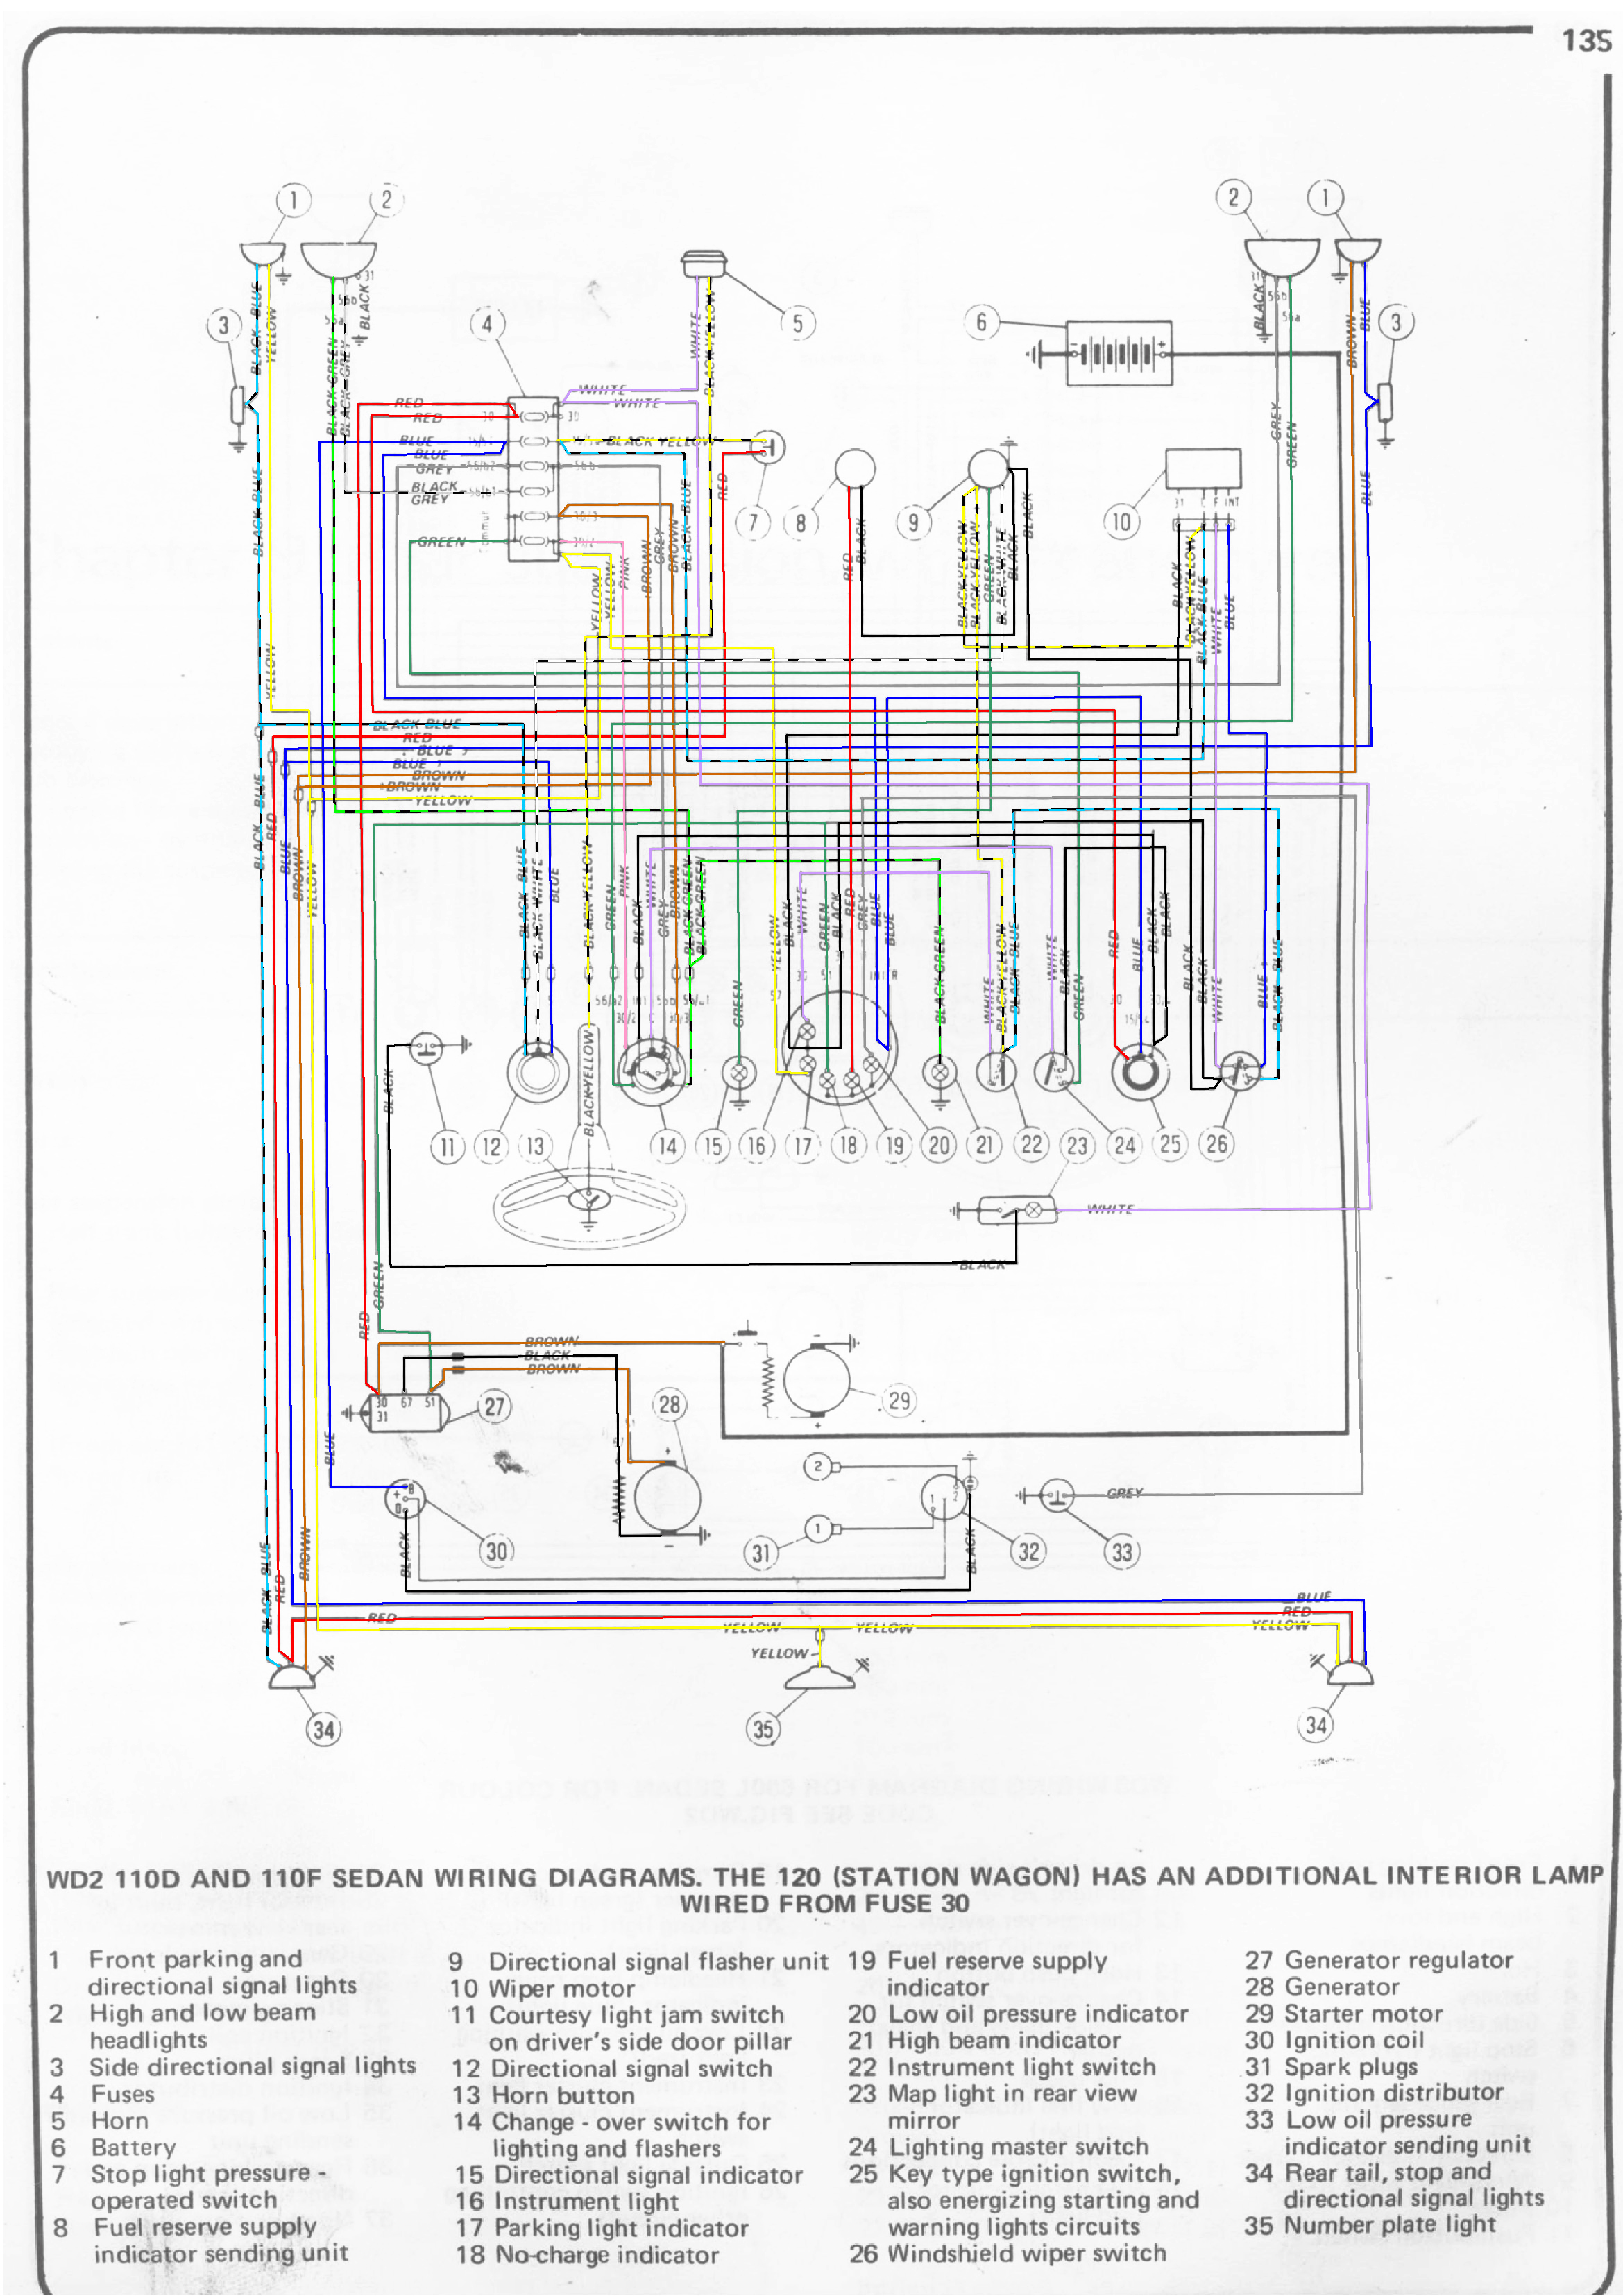 Fiat+500+Wiring+Diagram?t\\\=1508407624 2012 fiat 500 wiring diagram 2012 fiat 500 wiring diagram \u2022 wiring fiat grande punto wiring diagram pdf at gsmx.co